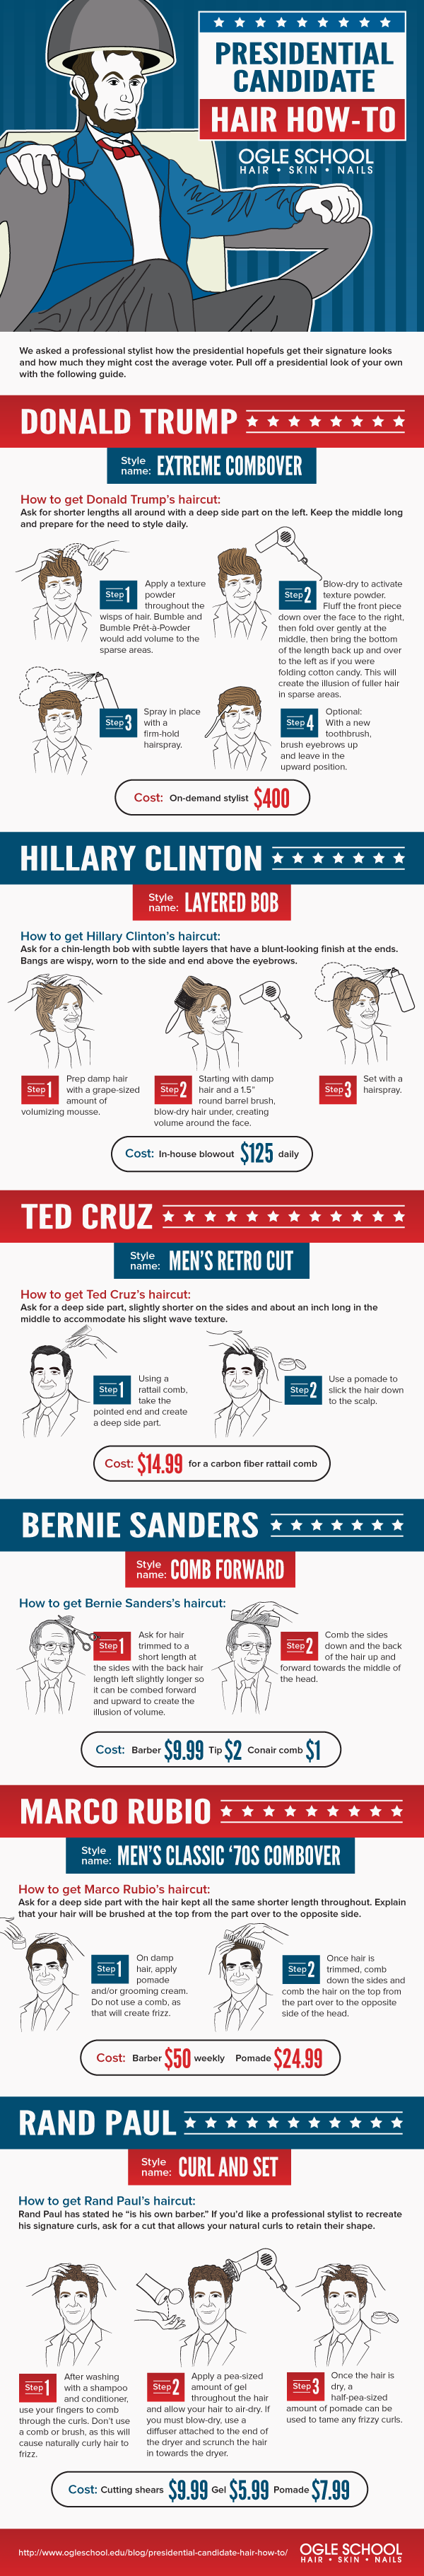 Presidential Candidate Hairdo How-To